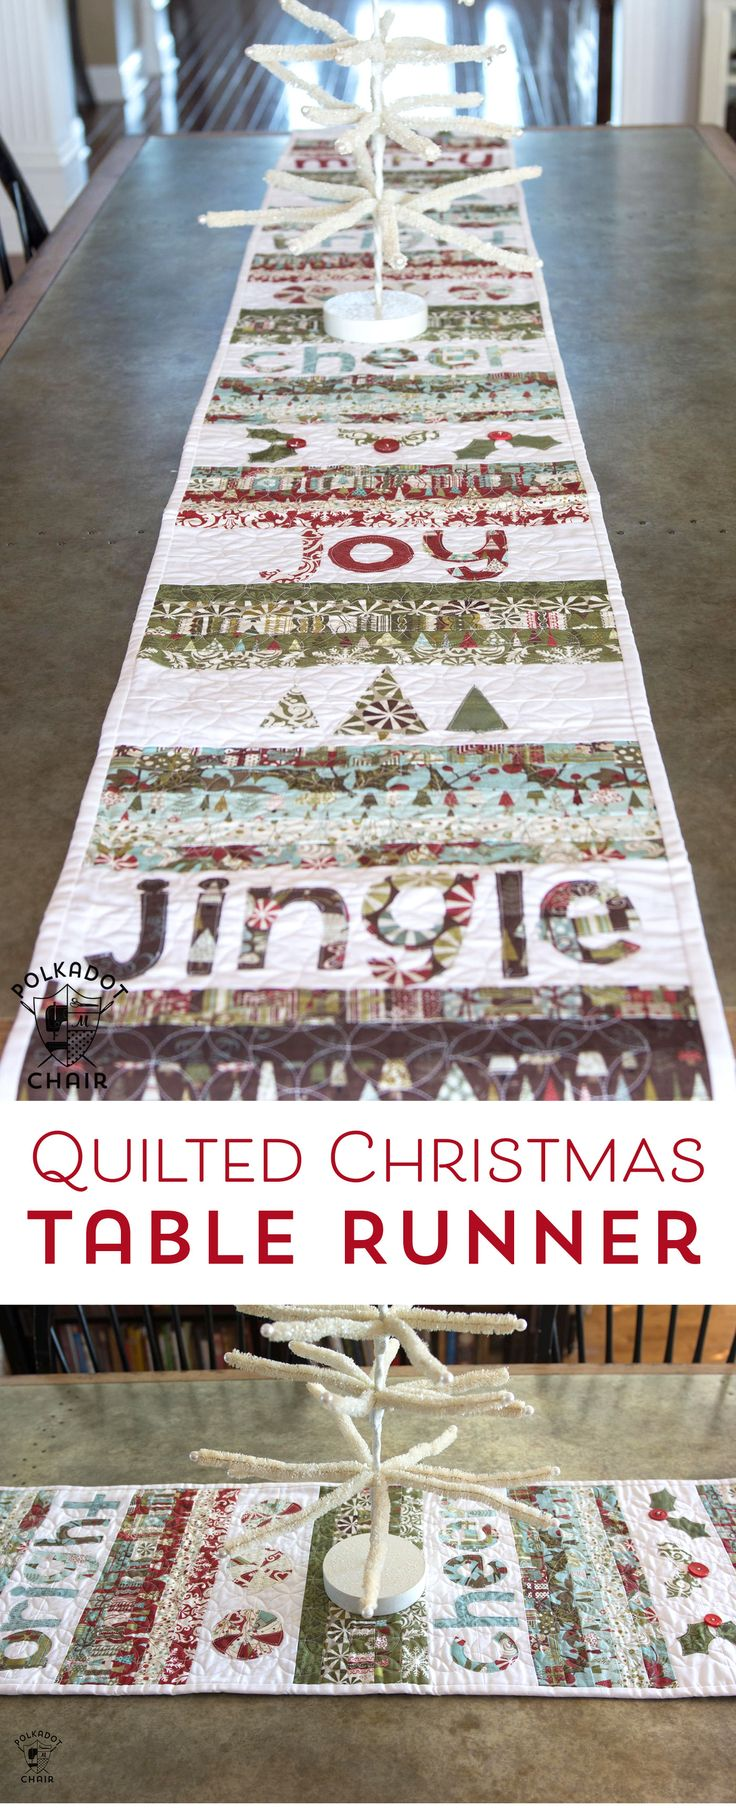 Merry & Cheer Quilted Christmas Holiday Table Runner Pattern                                                                                                                                                                                 More